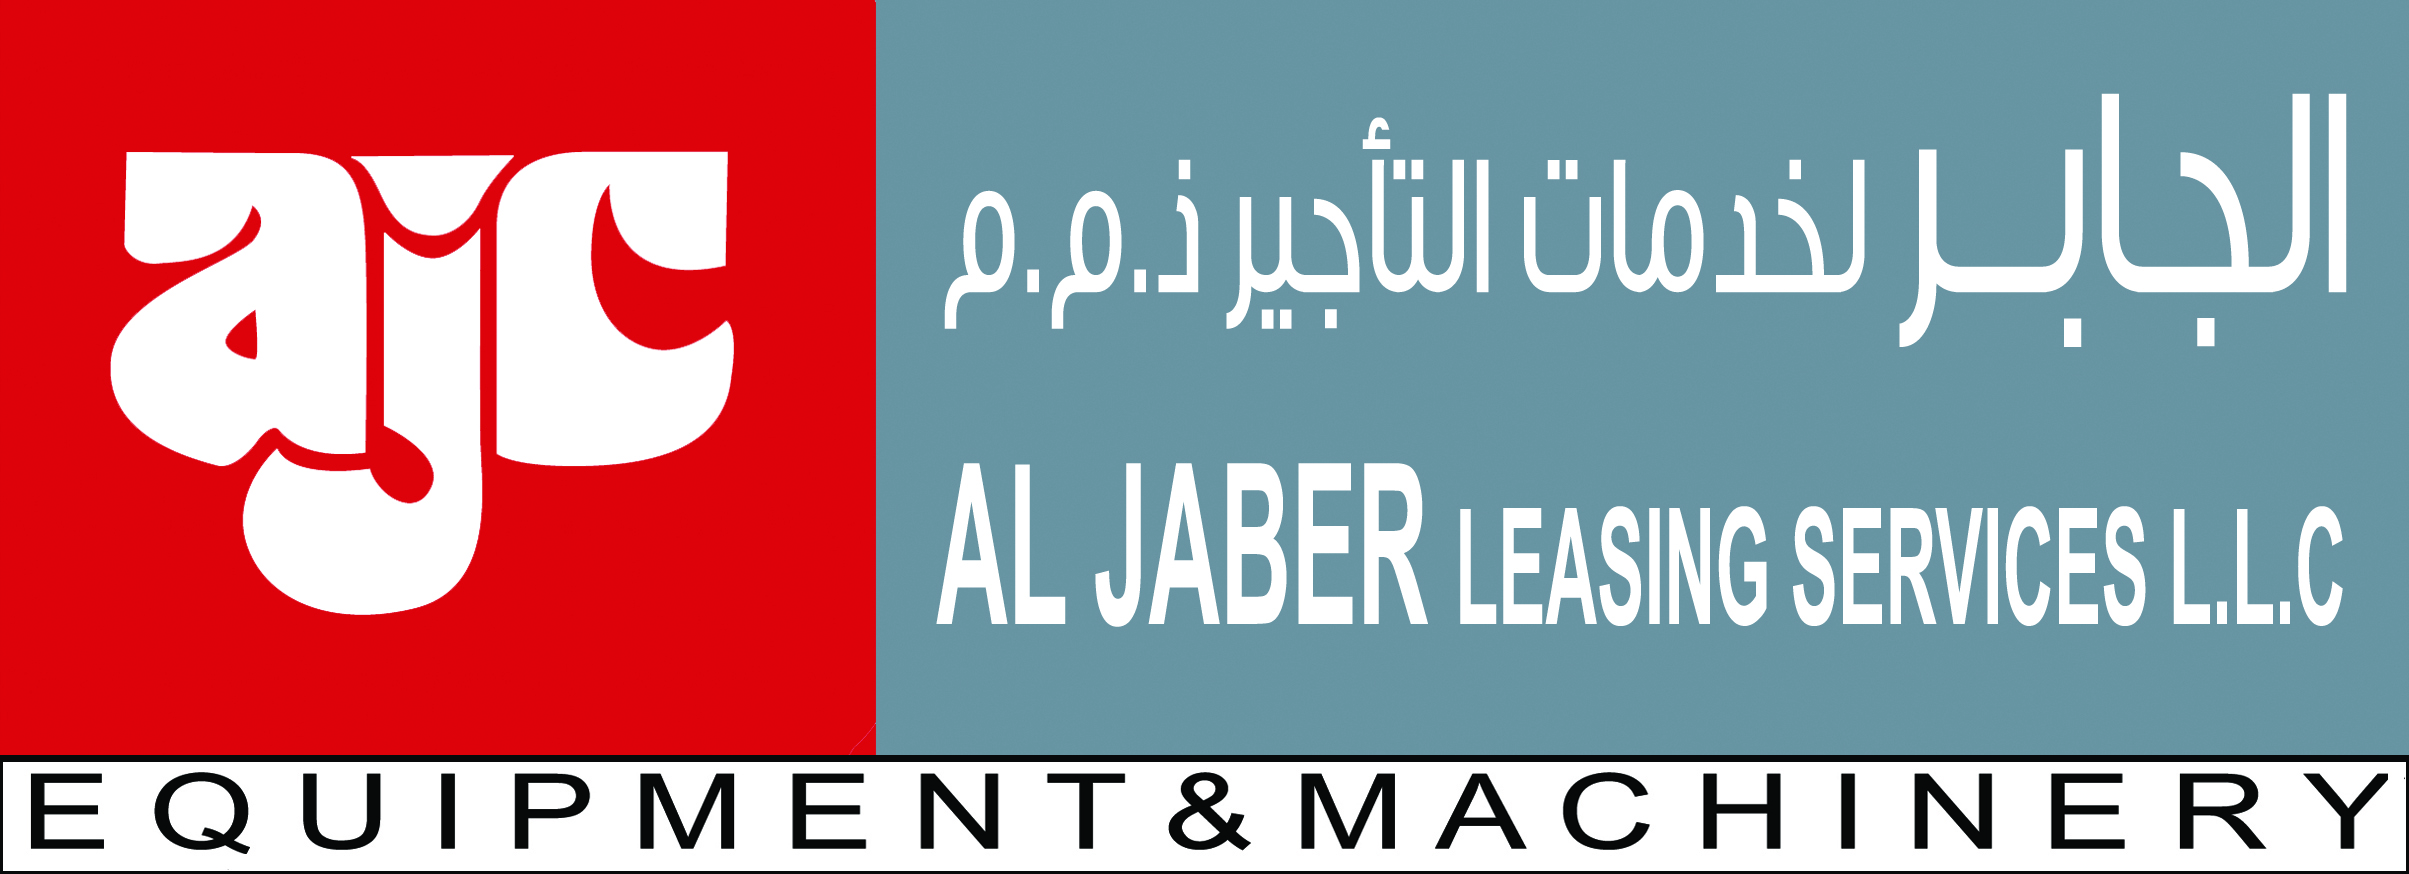 Al Jaber Leasing Services L.L.C. (ALES) is a subsidiary of Al Jaber Group (AJC), officially launched in 2009 operating as an independent entity providing equipment rental, transportation, maintenance and repair services to the construction, Oil & Gas and industrial sectors in the UAE and gulf region.